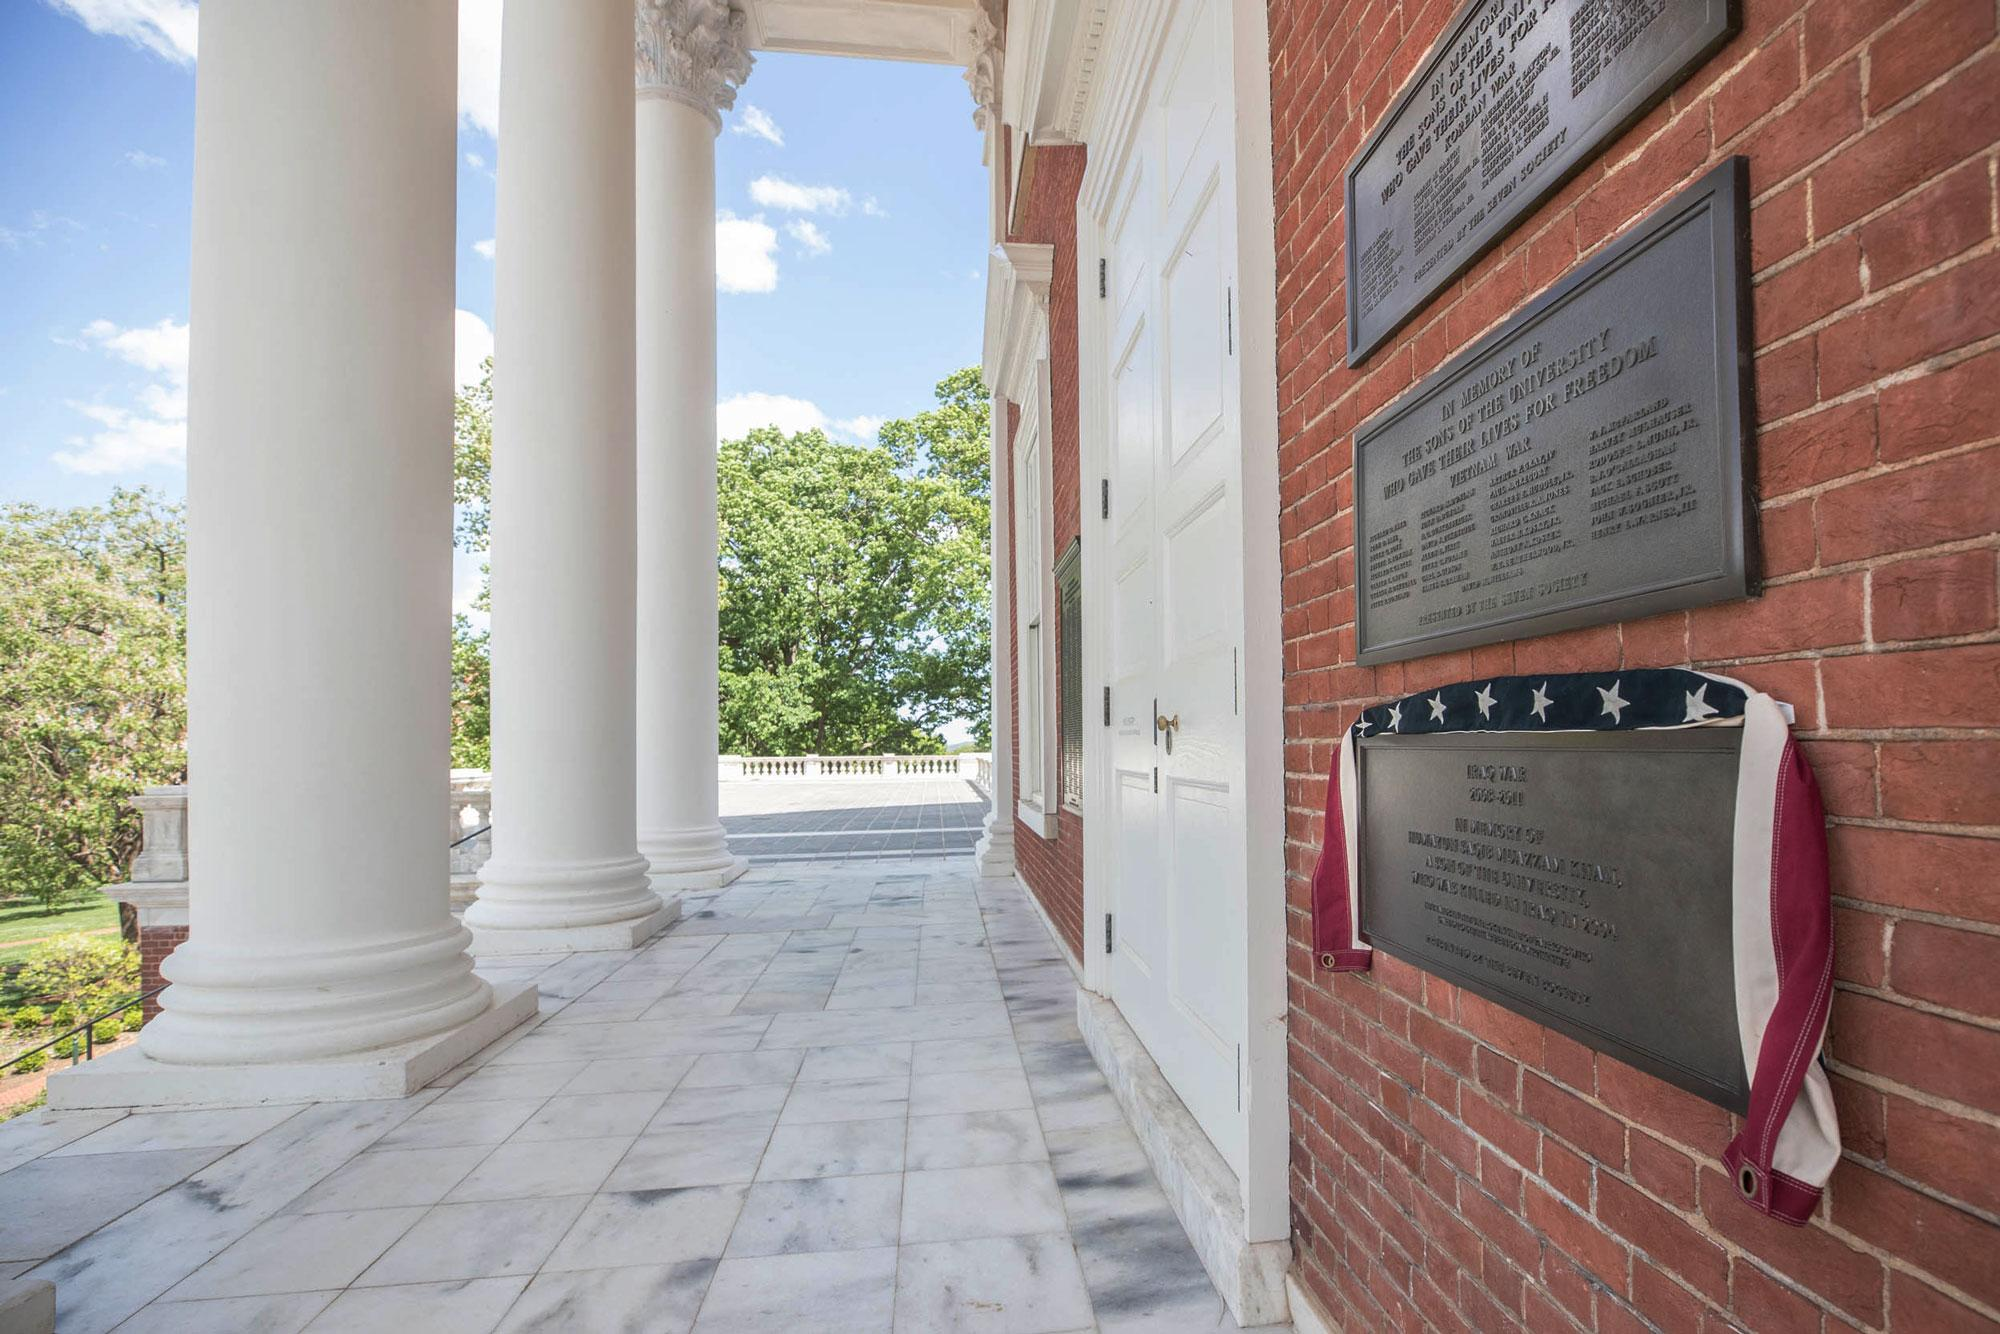 A new plaque mounted on the north wall of the Rotunda honors Capt. Humayun Khan, the lone UVA alum killed in the Iraq War. (Photos by Sanjay Suchak, University Communications)